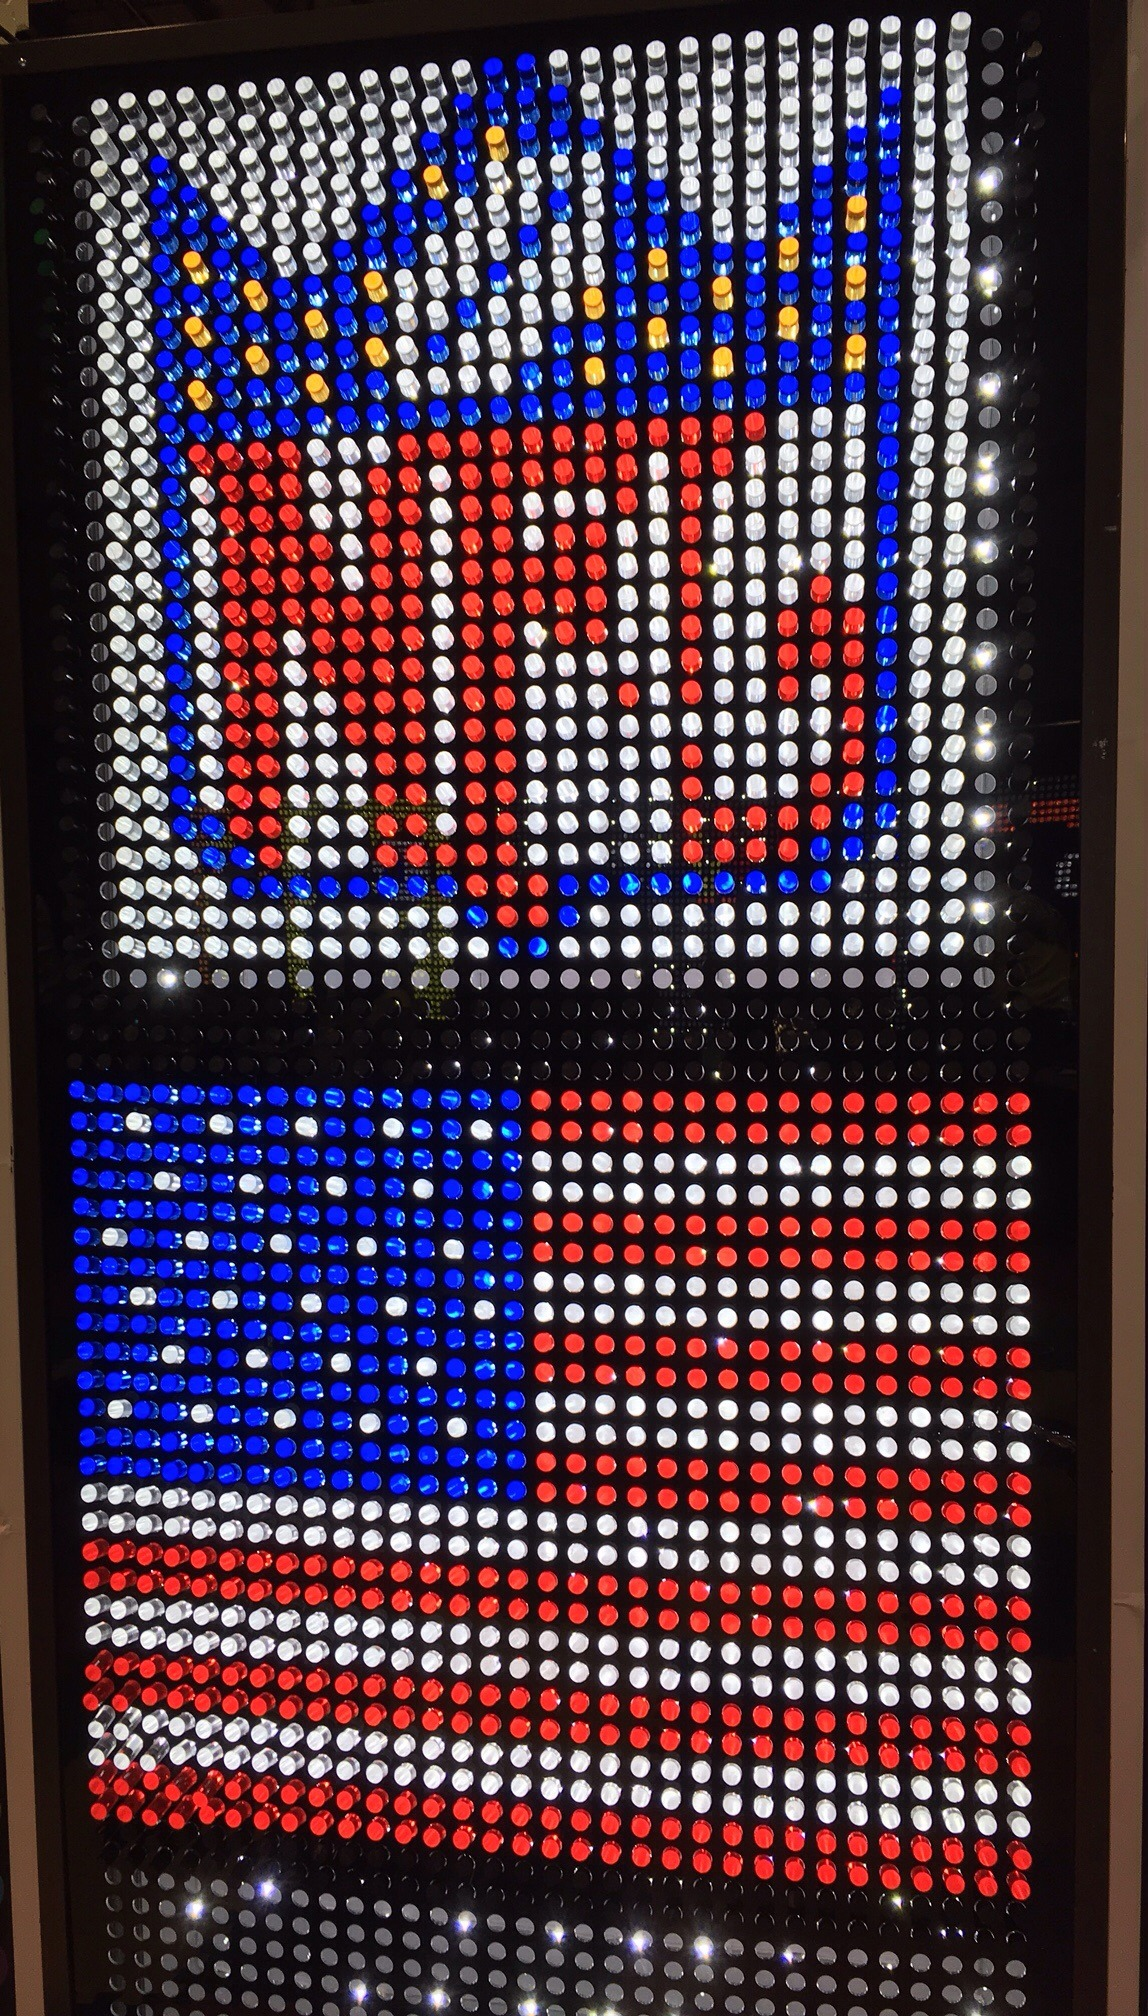 Giant Lite Brite Game